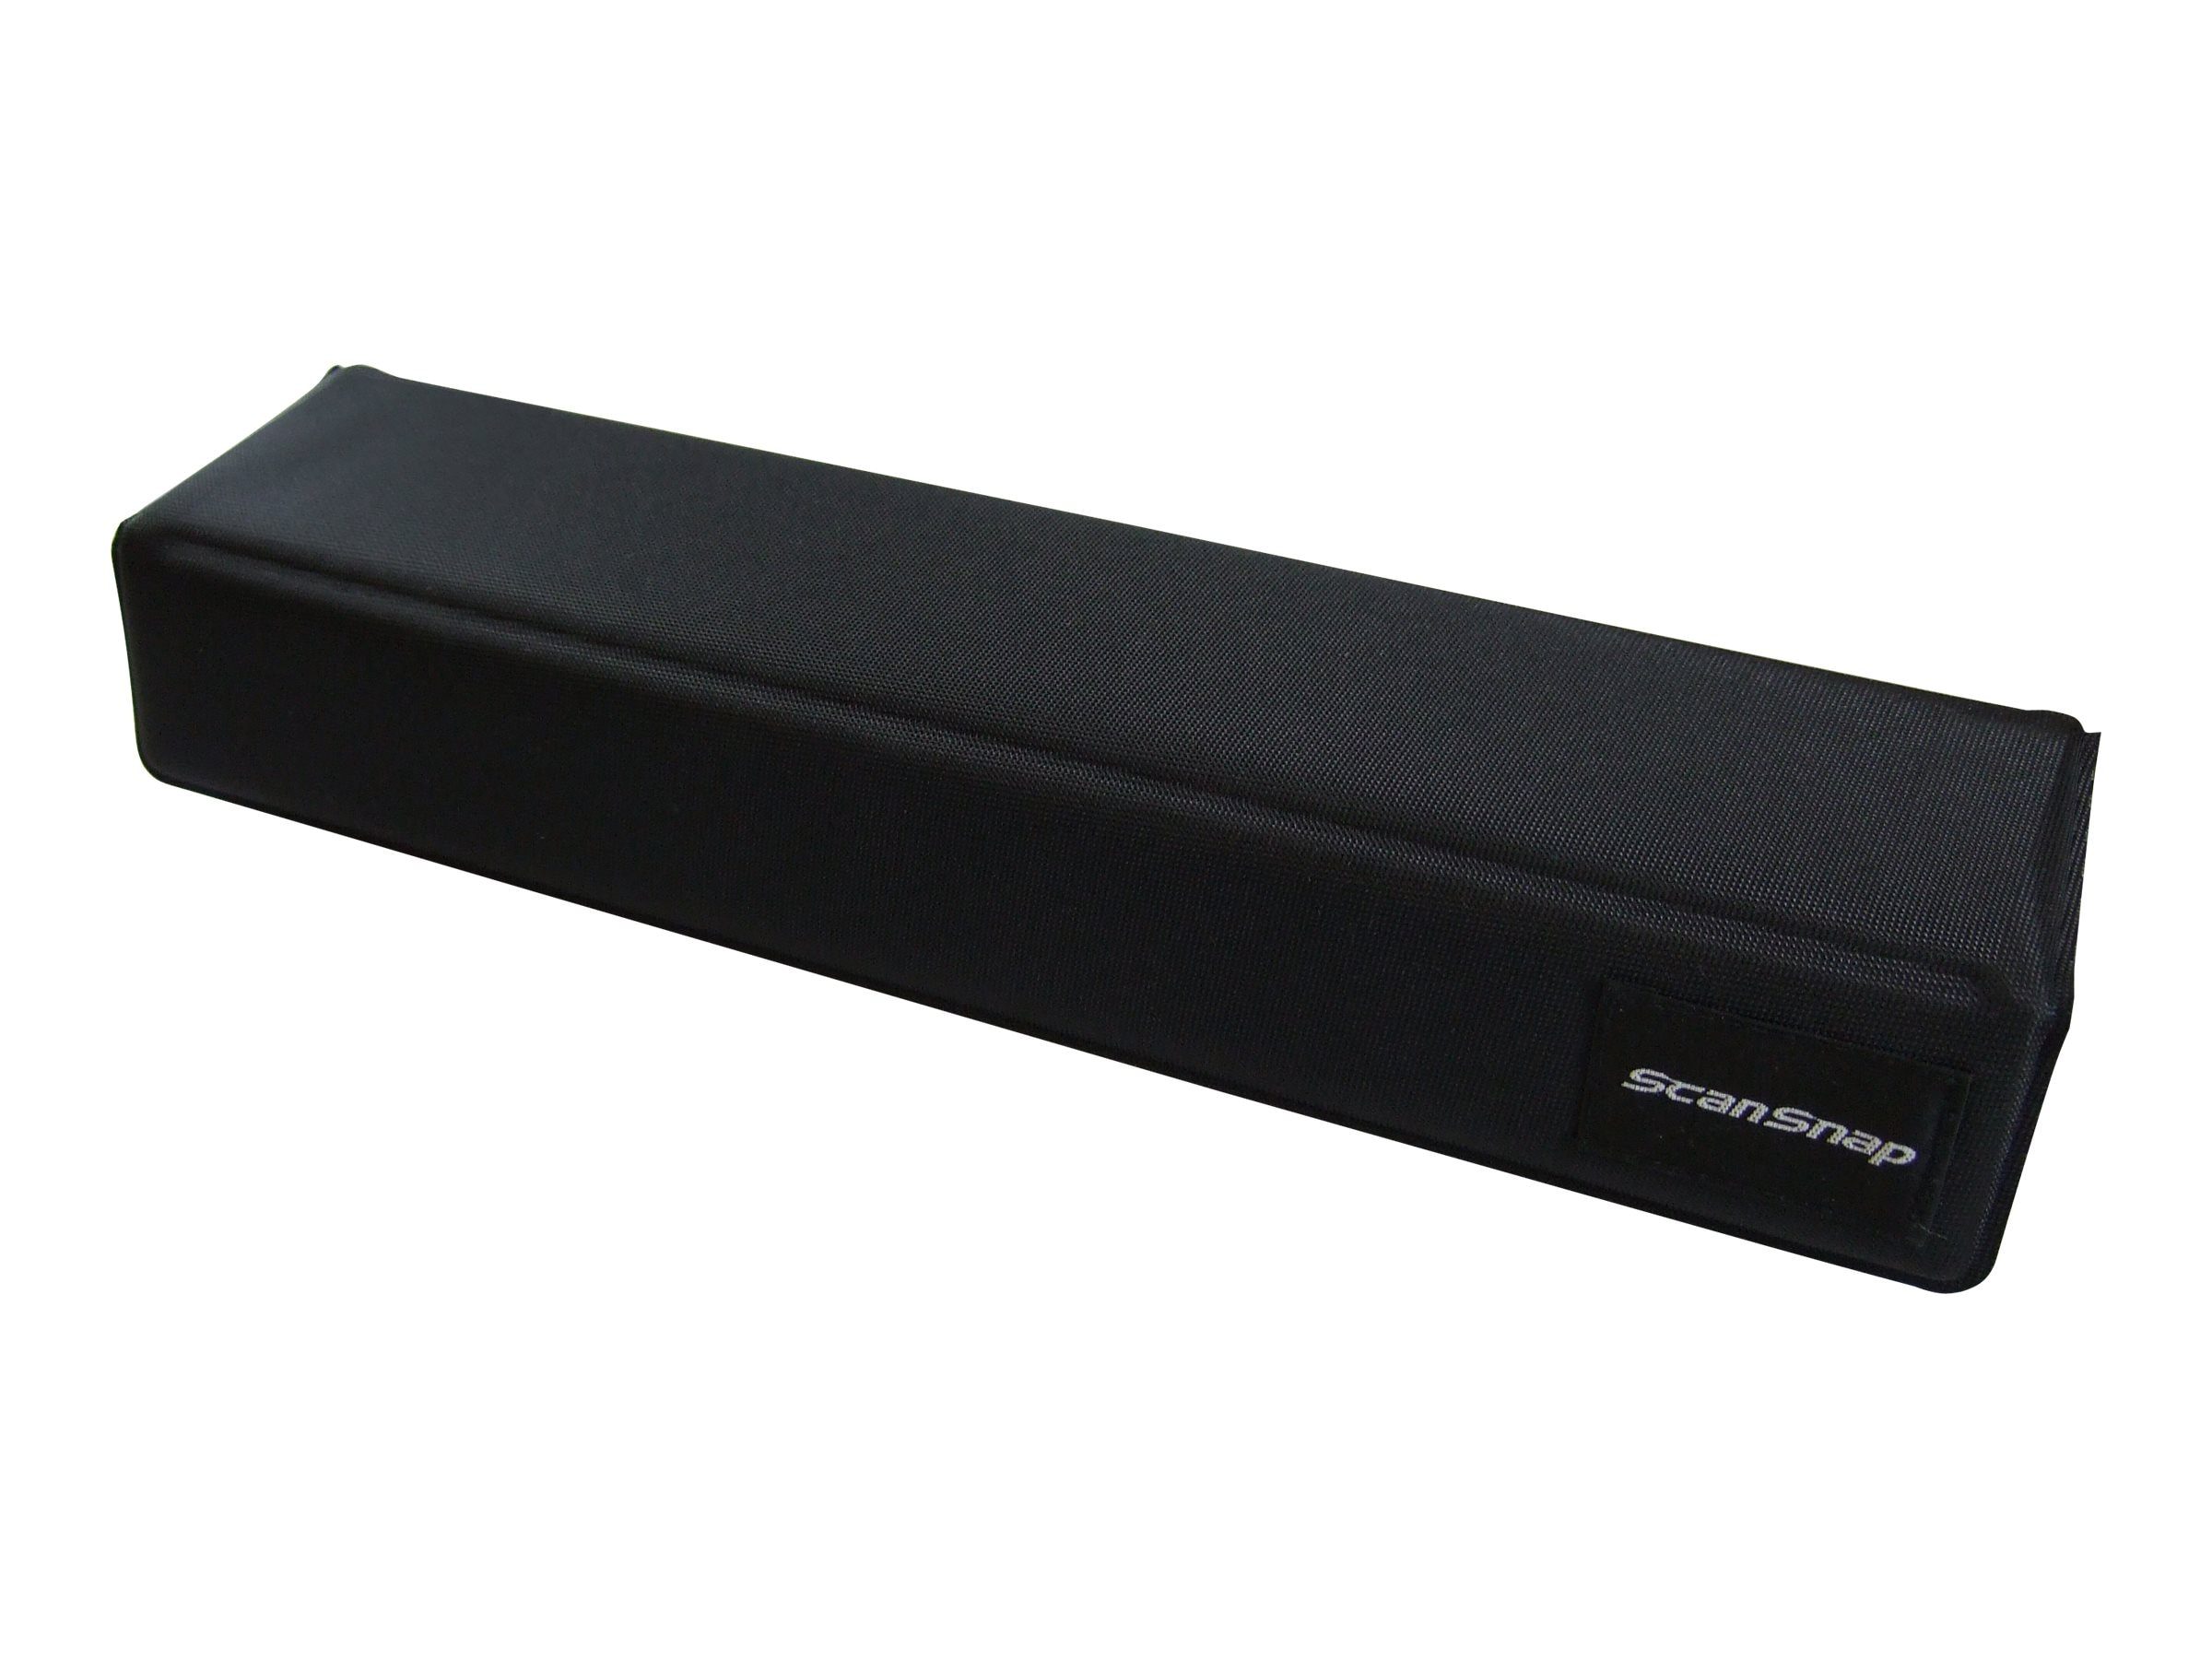 Fujitsu Case for ScanSnap iX100 Mobile Scanner